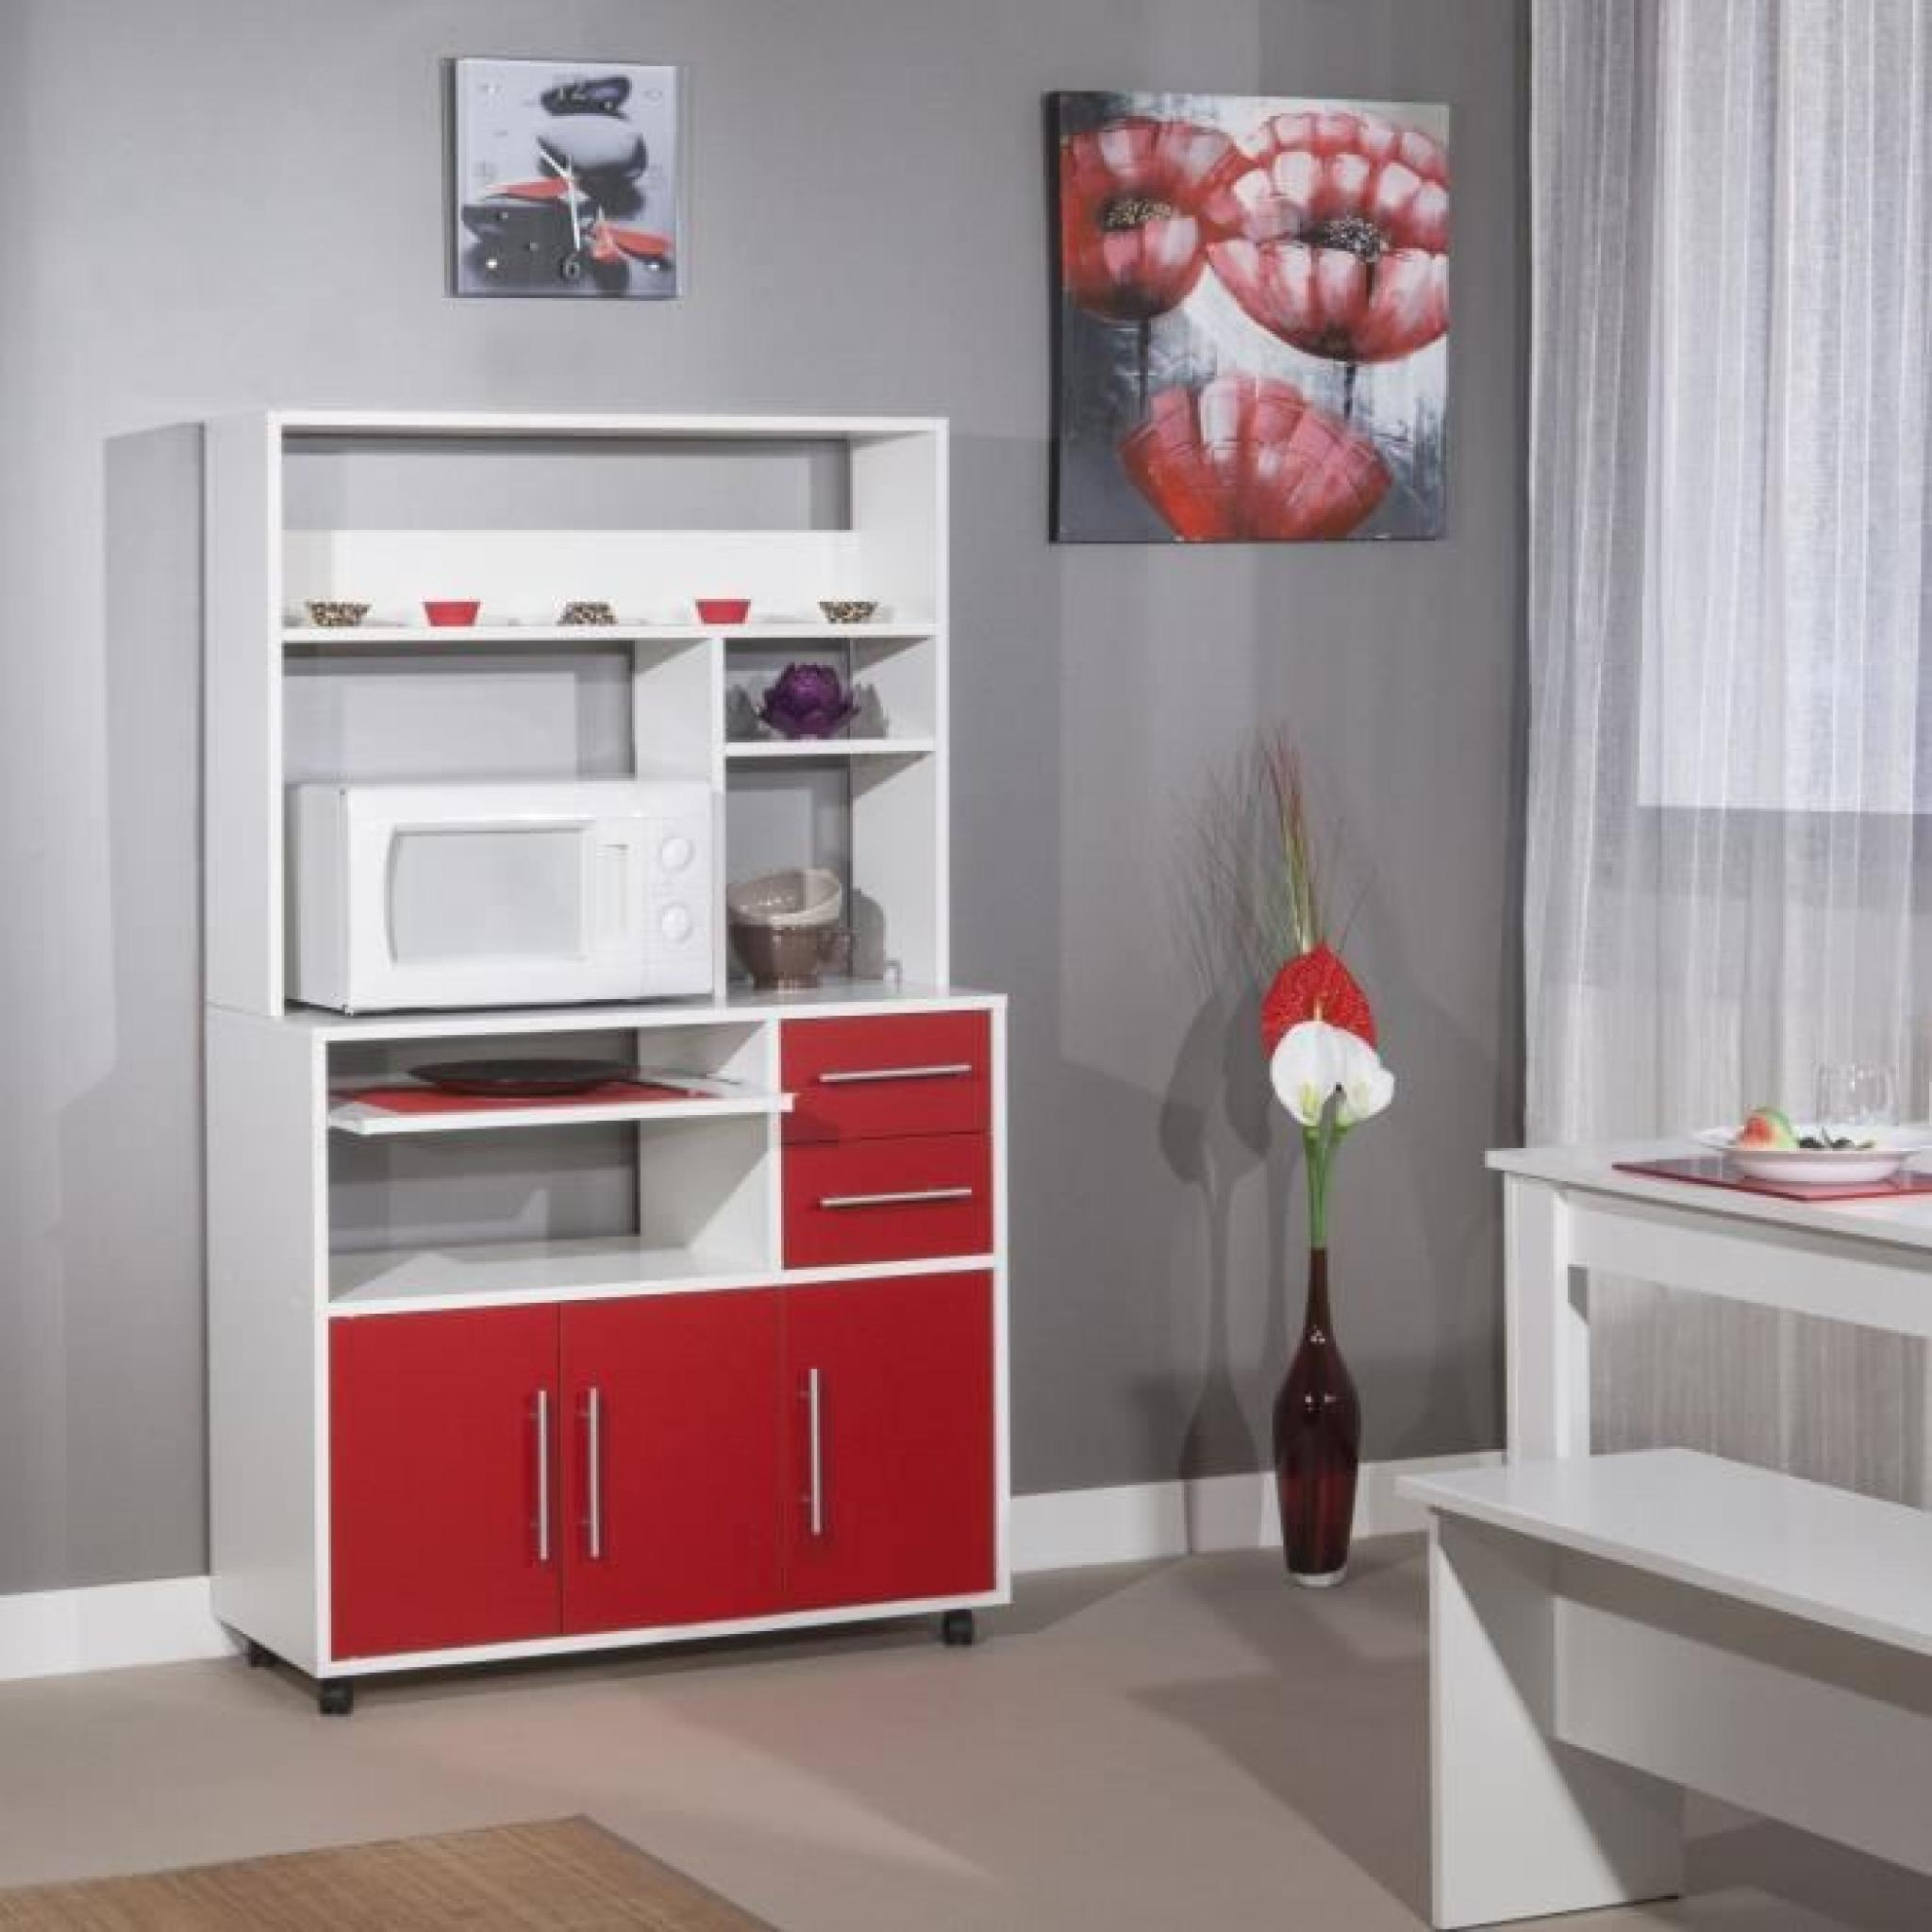 peps buffet de cuisine 89cm rouge et blanc achat vente buffet de cuisine pas cher couleur. Black Bedroom Furniture Sets. Home Design Ideas